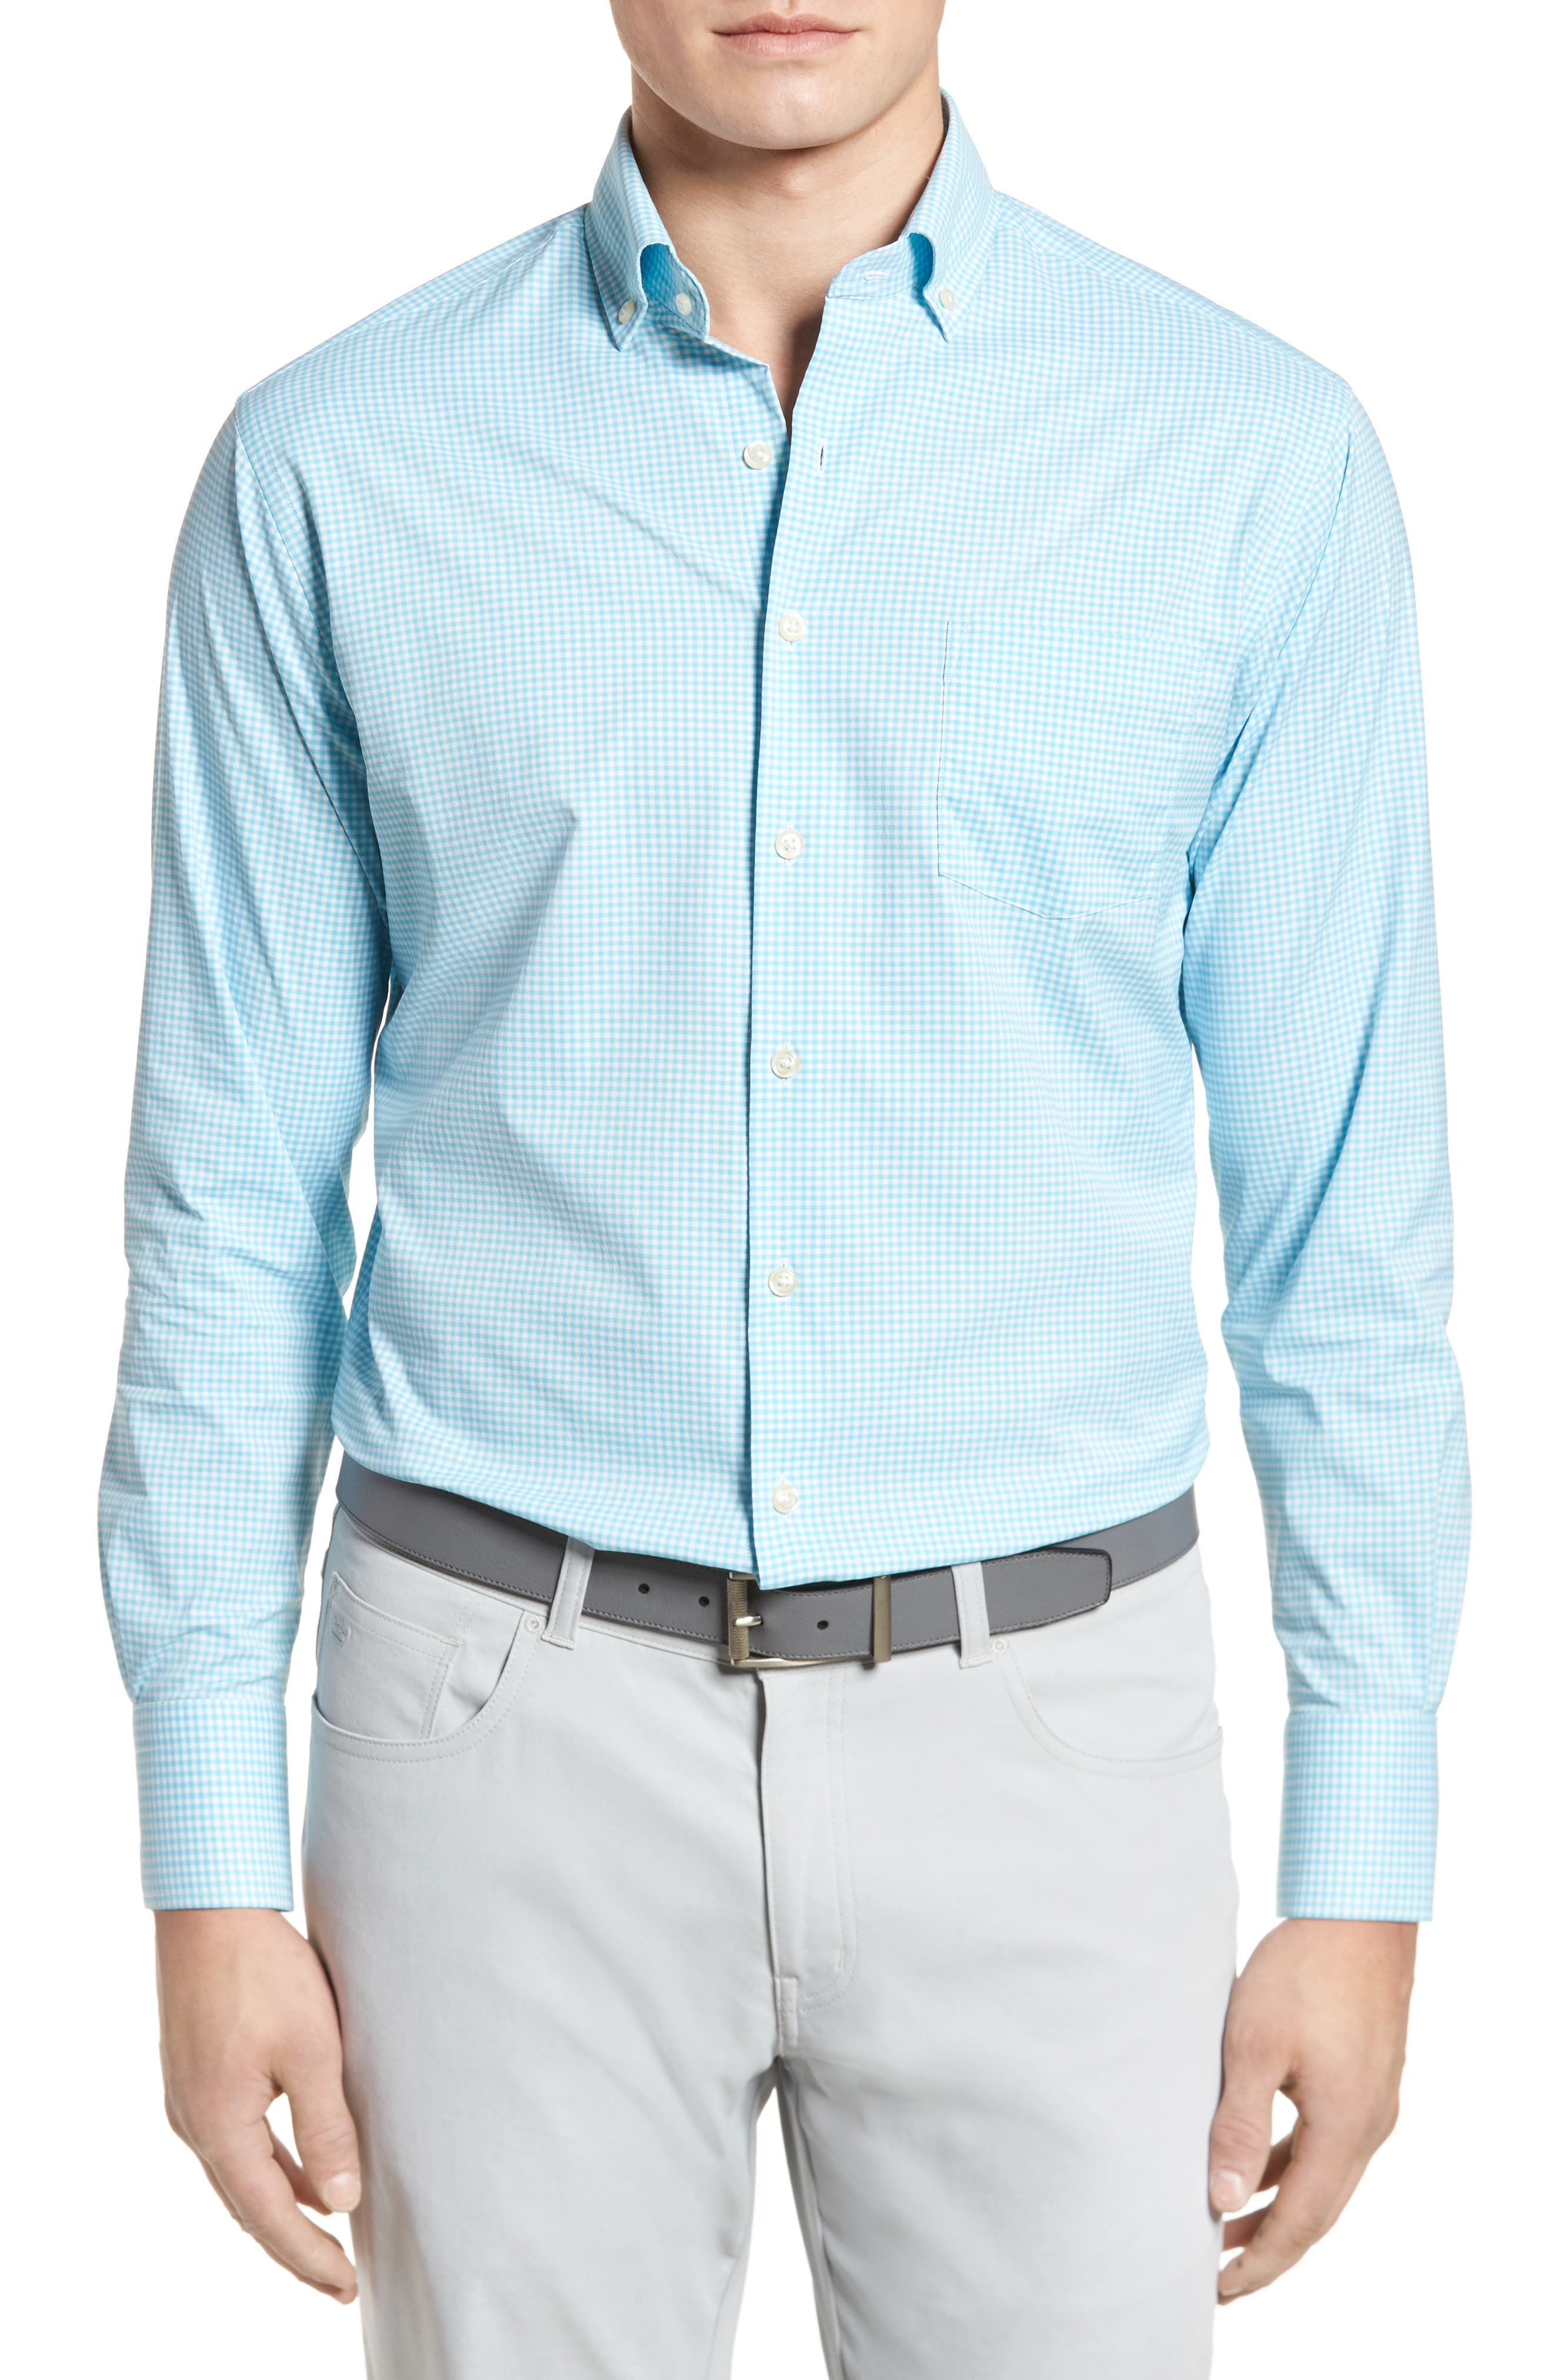 Mimi Regular Fit Check Performance Sport Shirt,                         Main,                         color, Grotto Blue/ White